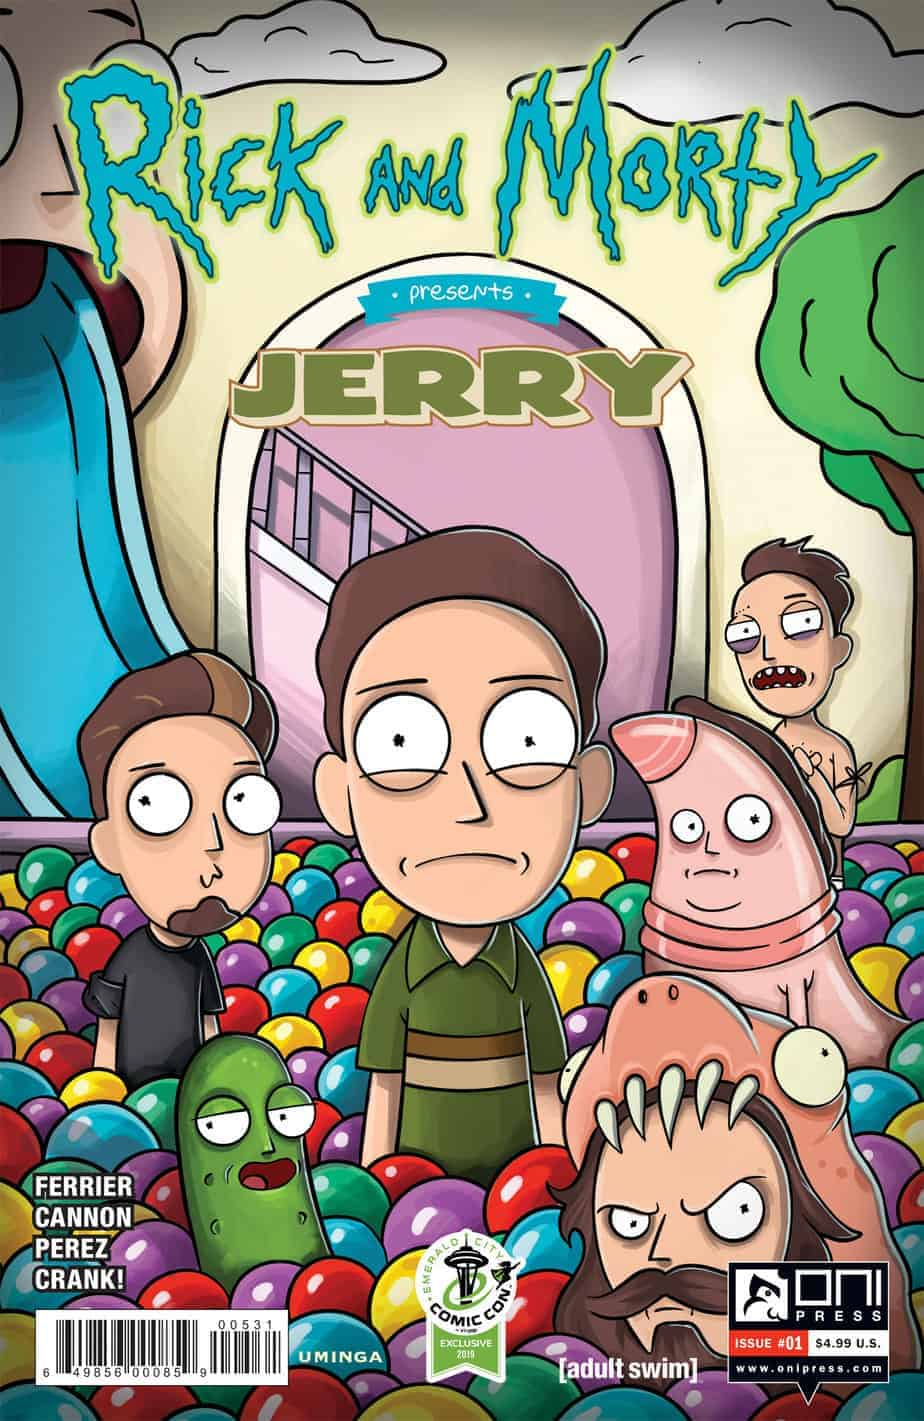 Rick and Morty™ Presents: Jerry #1 - Cover C - ECCC Variant